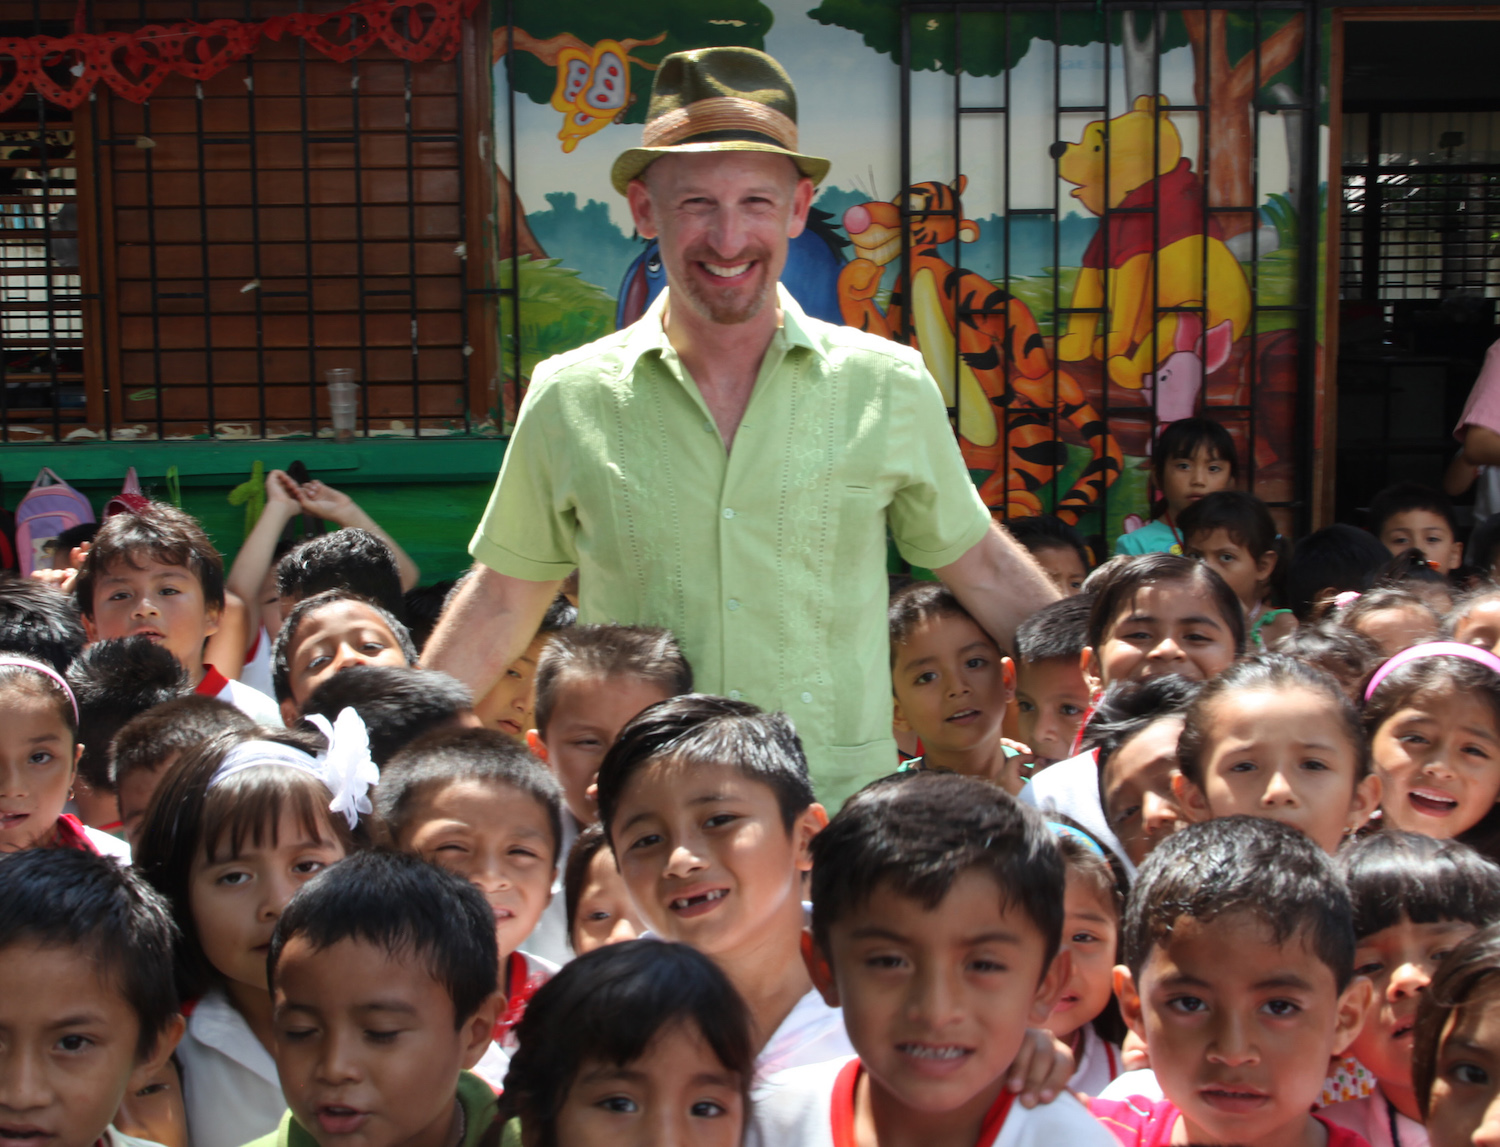 Mister G with preschoolers in Mexico